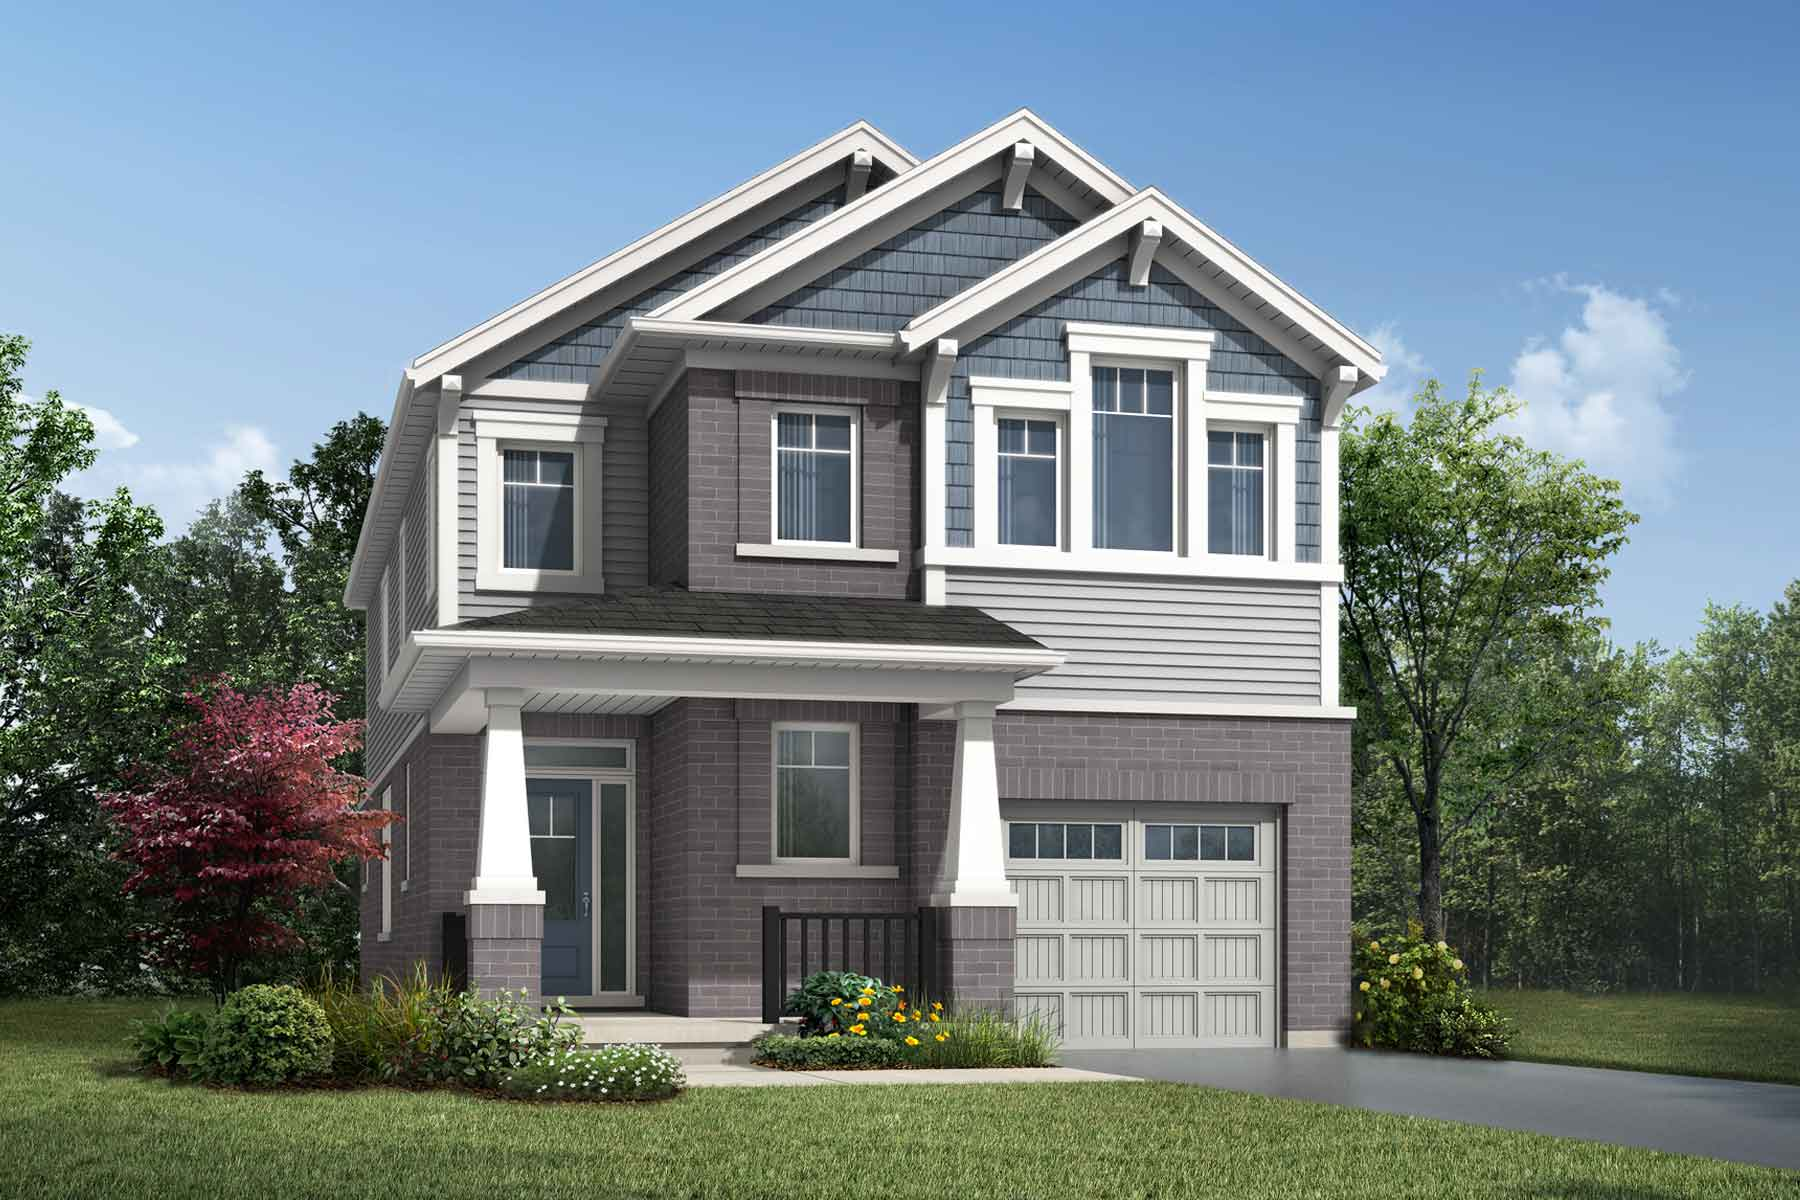 The Linwood Plan craftsman_southestates_linwood_main at Wildflower Crossing in Kitchener Ontario by Mattamy Homes